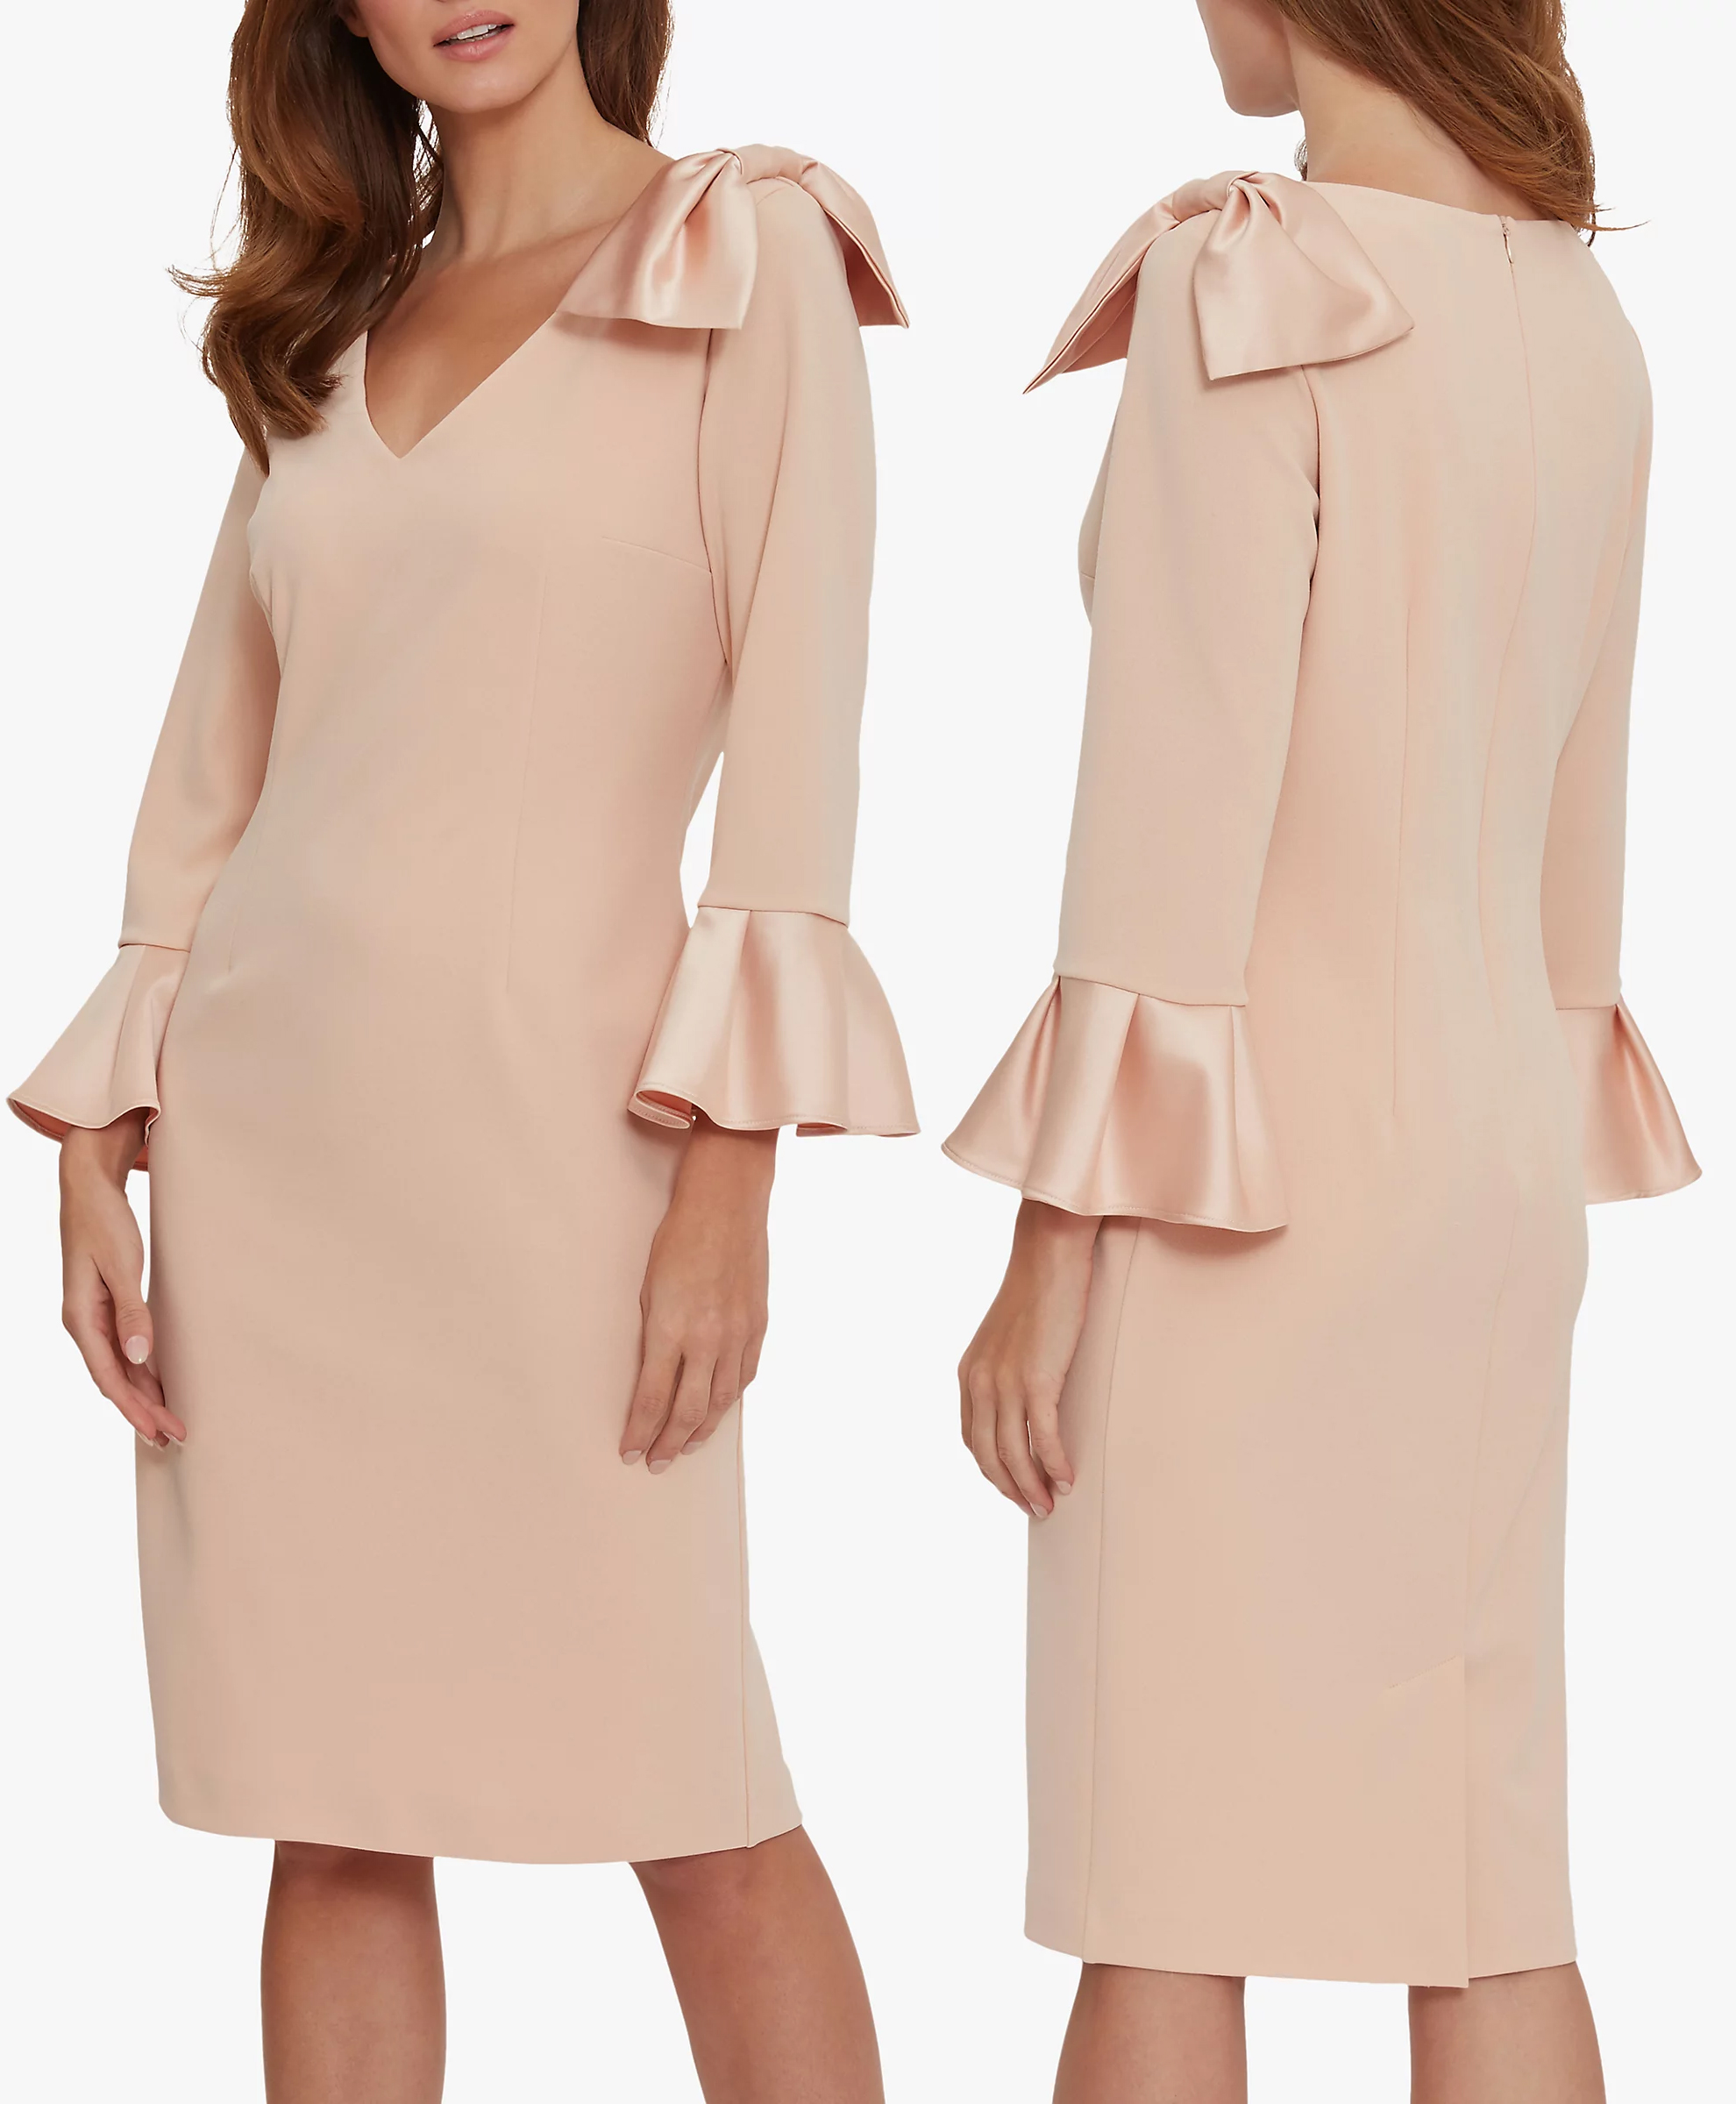 Mother of the Bride dress for Spring Wedding 2021. Soft Peach  Mother of the Bride Dress 2021. Peach Mother of the Groom Dress 2021. What to wear for a Spring Summer Wedding 2021. Nude Colour Mother of the Bride outfit 2021. Fashionable Spring Mother of the Bride outfits 2021. Mother of the Groom Dresses 2021.